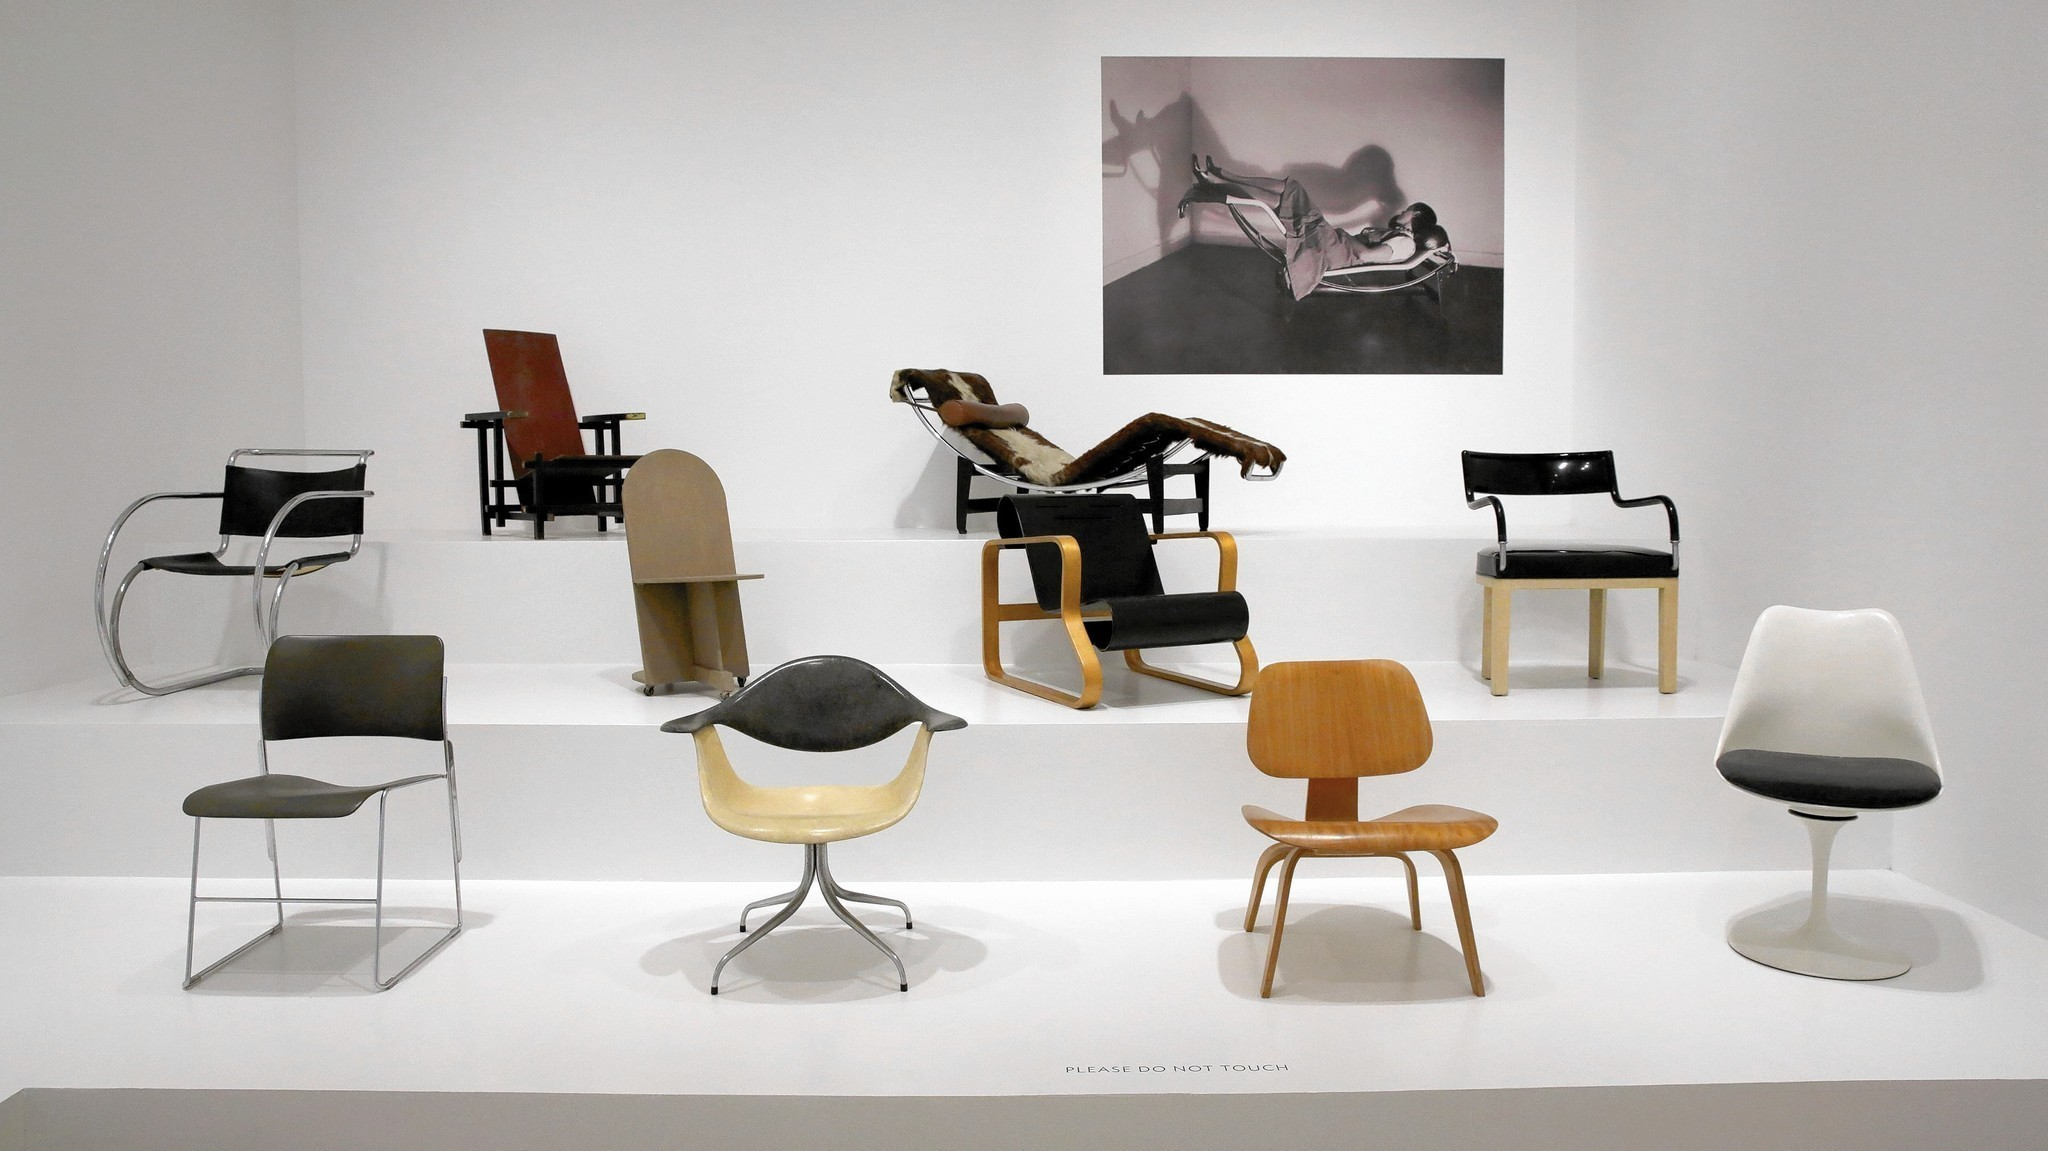 Design Furniture Chicago A Small Show About Chairs Hints At Larger Design Ambitions At The .